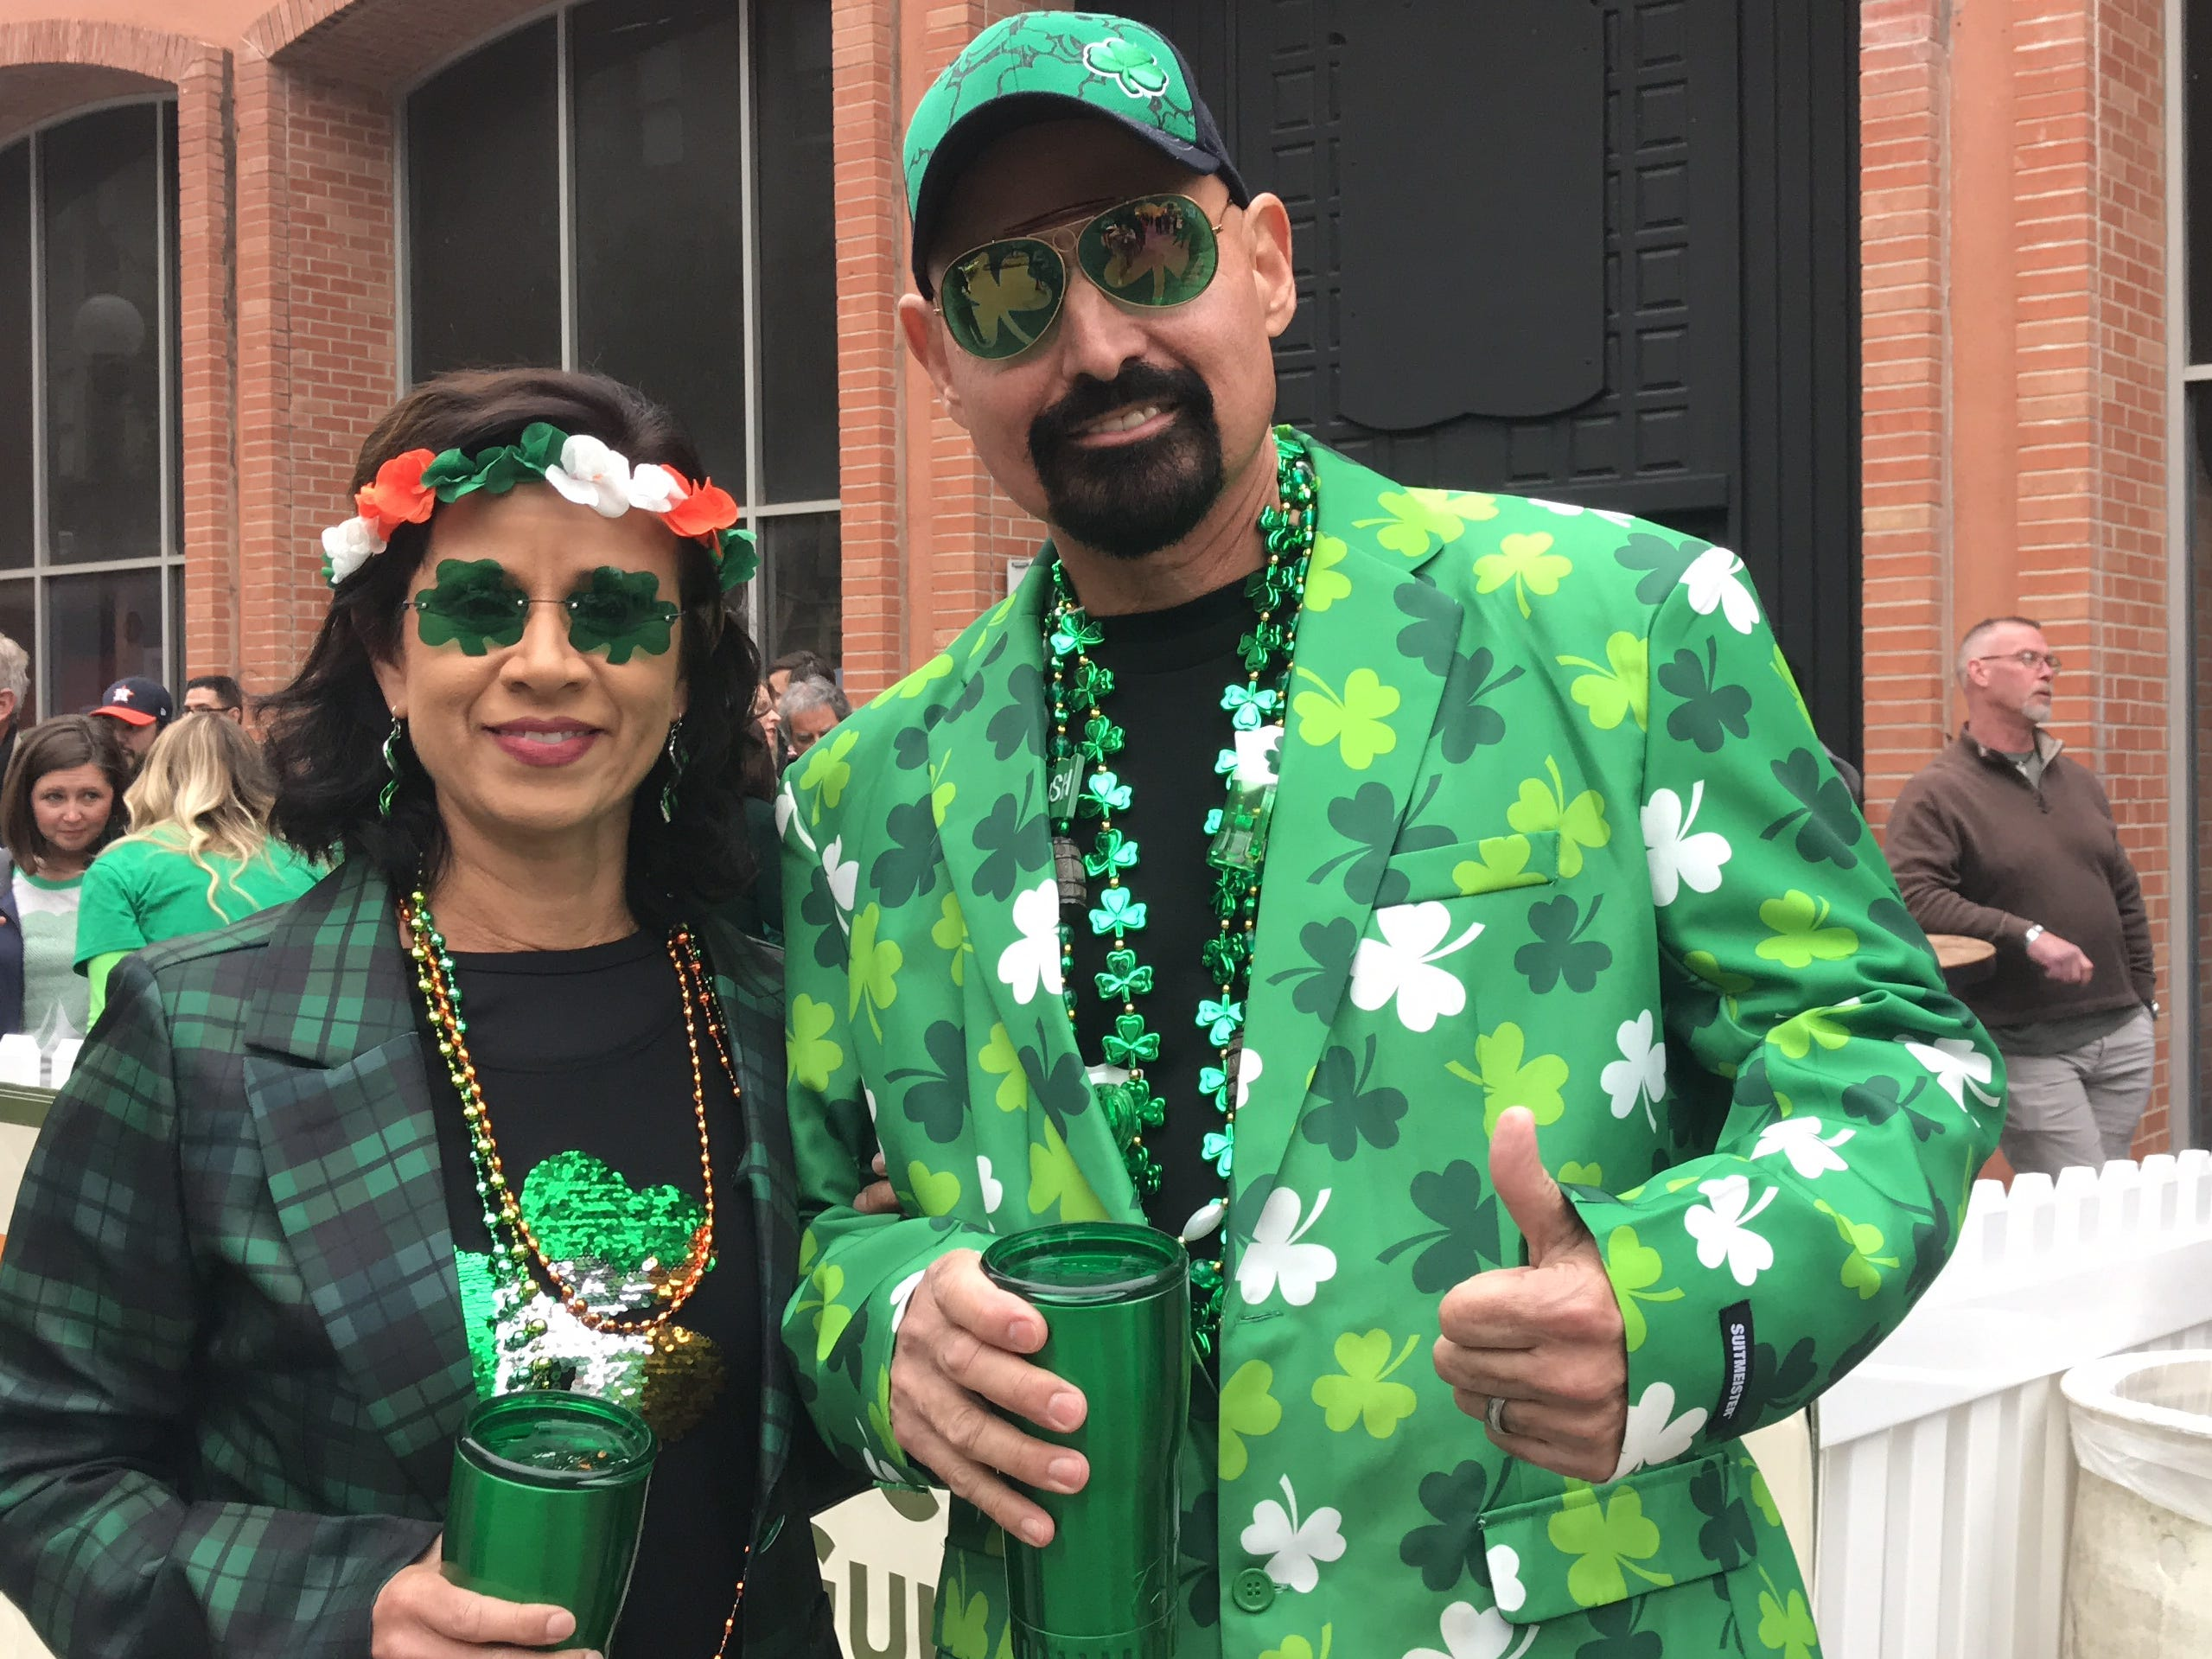 People dressed up in green clothes to celebrate St. Patrick's Day weekend at the 8th annual St. Paddy's Festival in Corpus Christi.